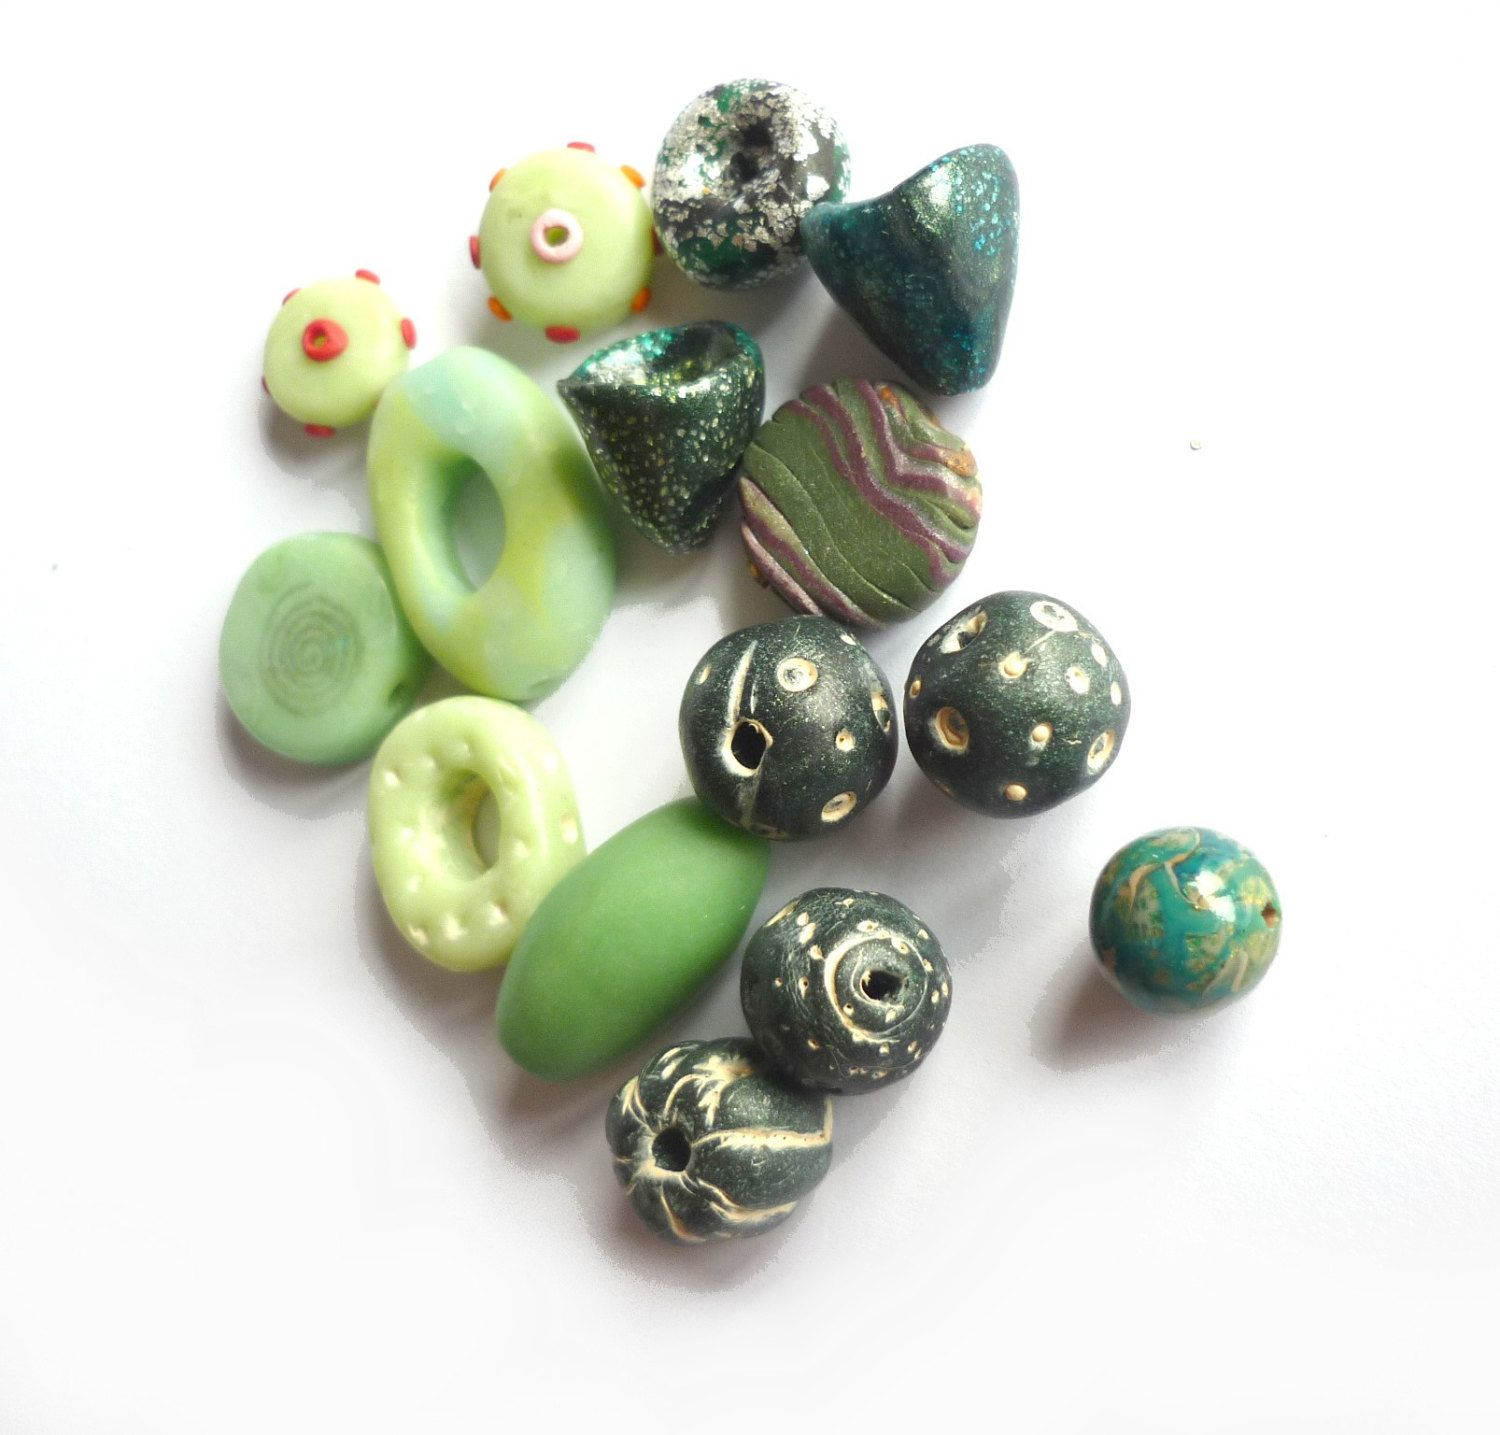 pc beads by bulk sale hzzf lillyscreationsco sold for from mm on in glass diy il fullxfull listing